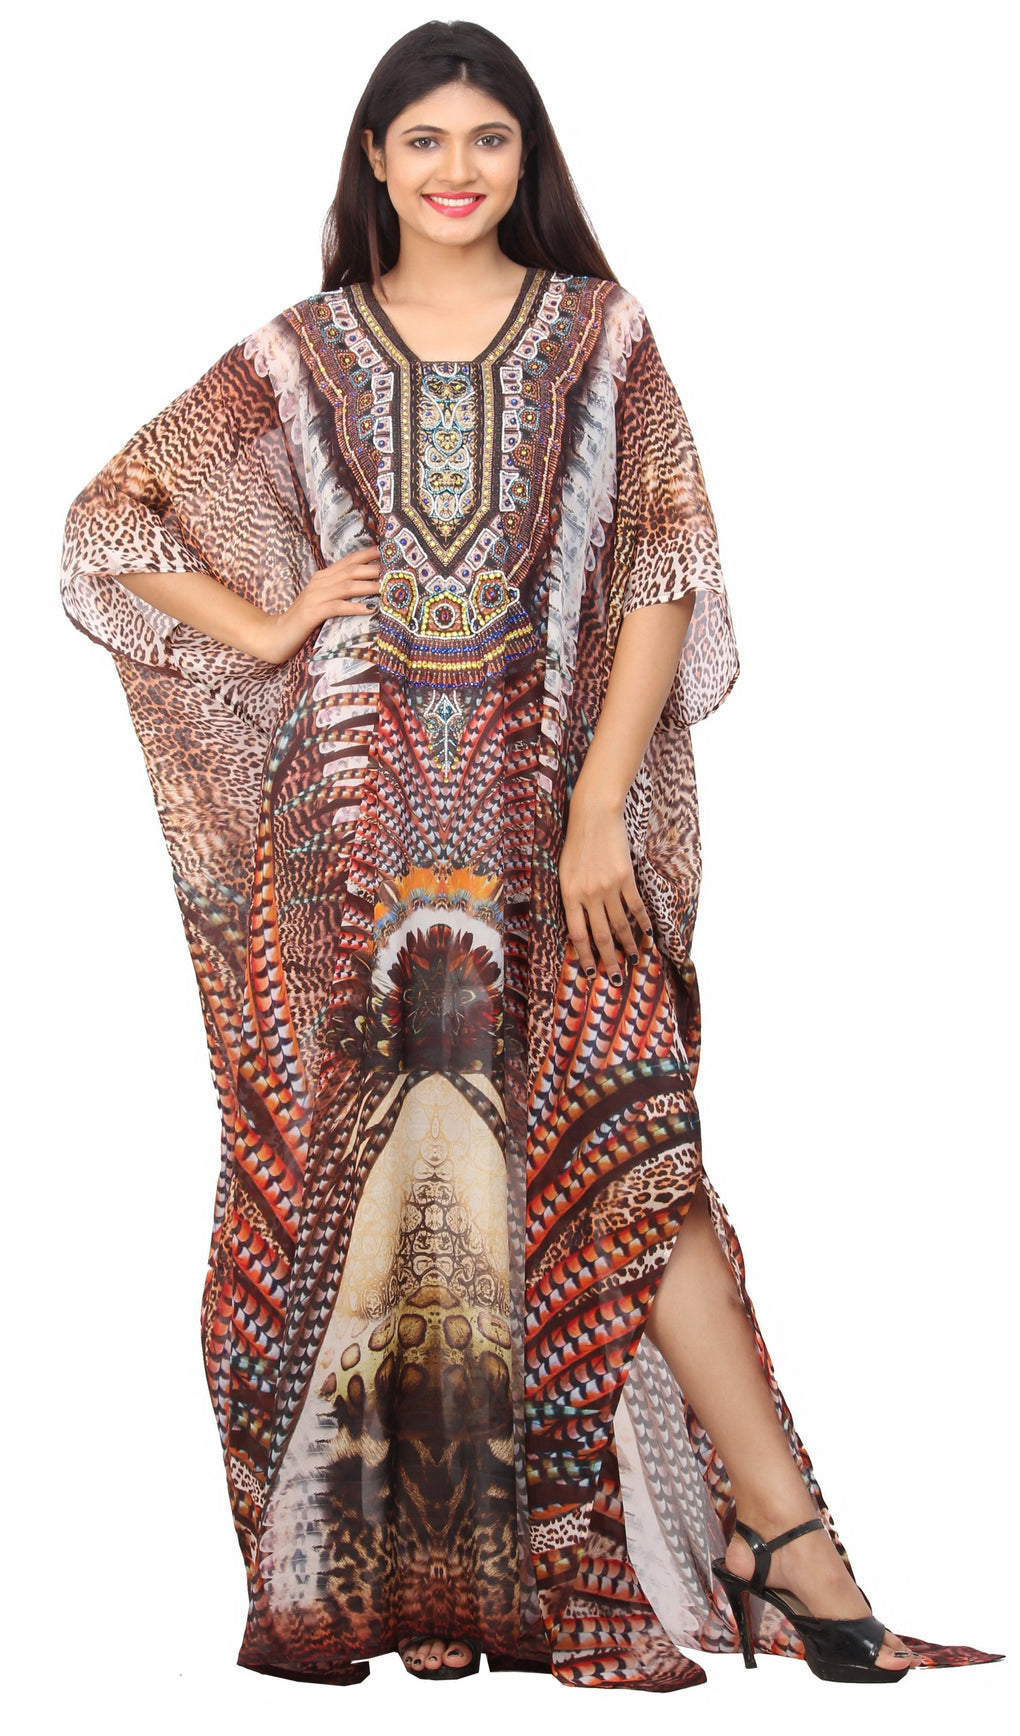 Stand Stronger put on Bohemian Print Silk Kaftan Dress with stylish embellishment - Silk kaftan